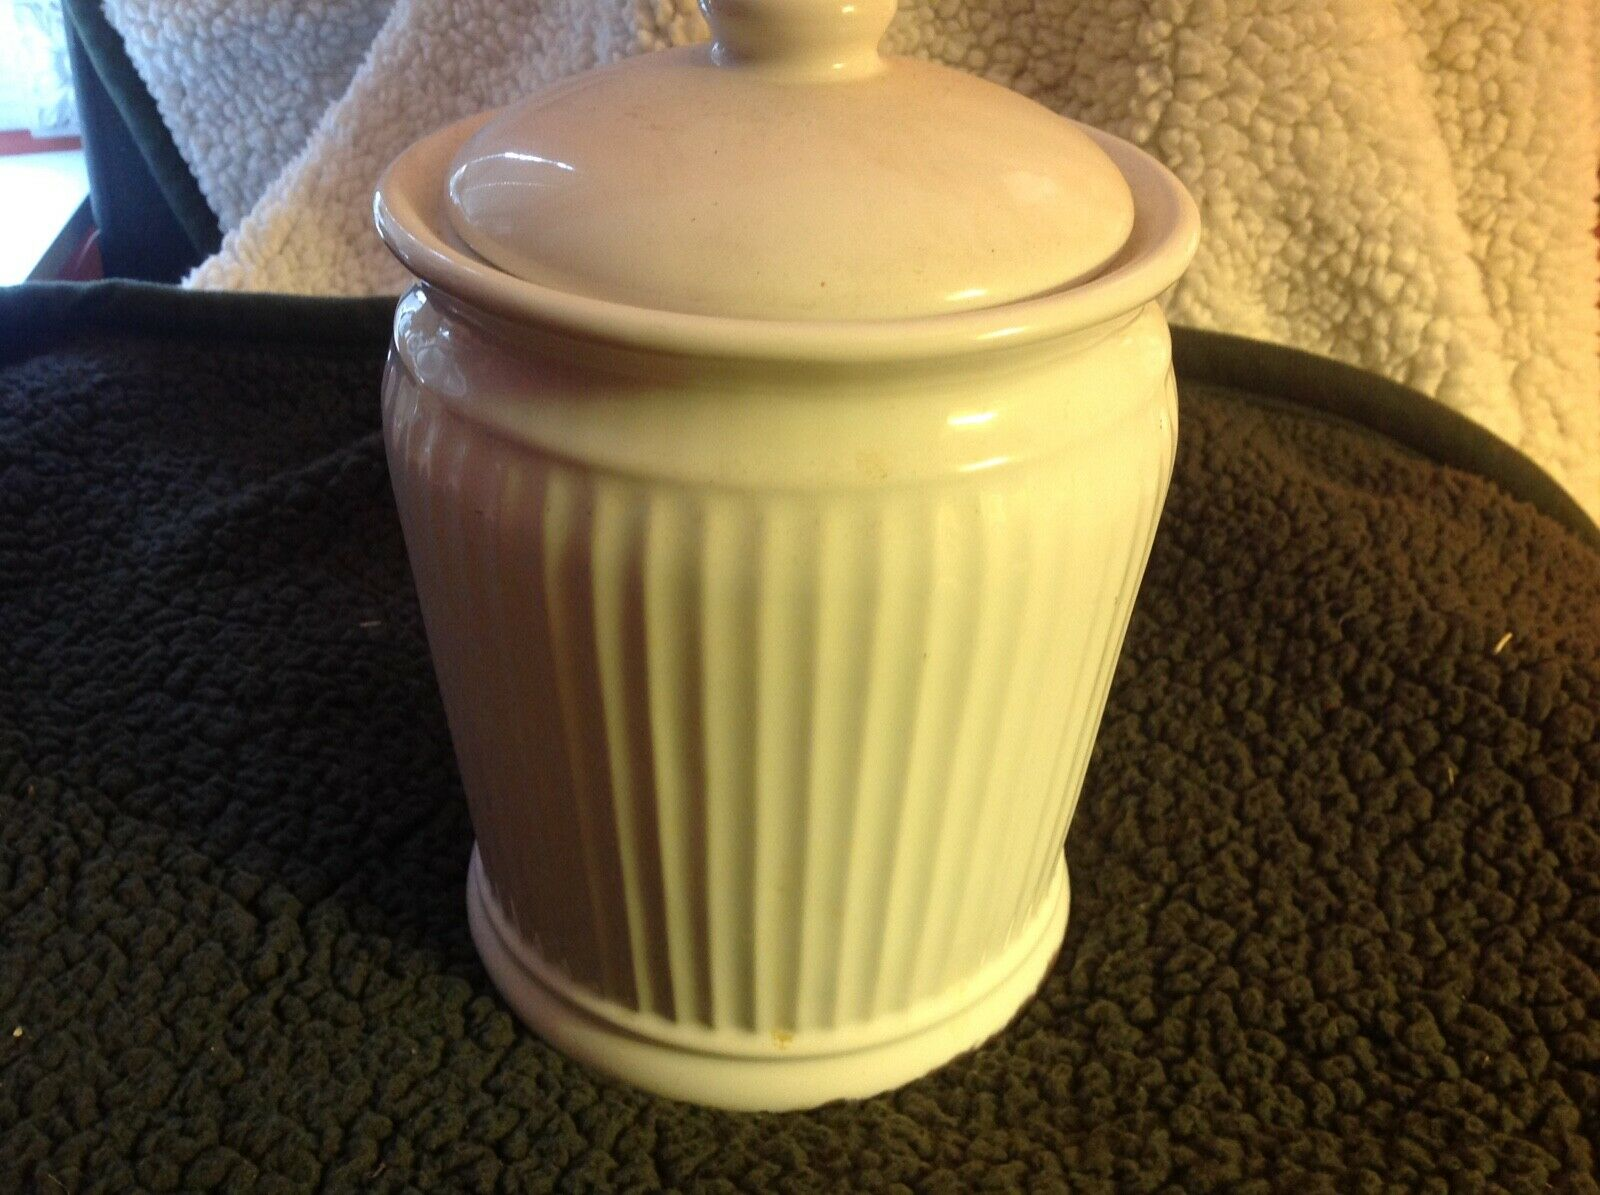 William & Sonoma Elegant White Ceramic Food Container